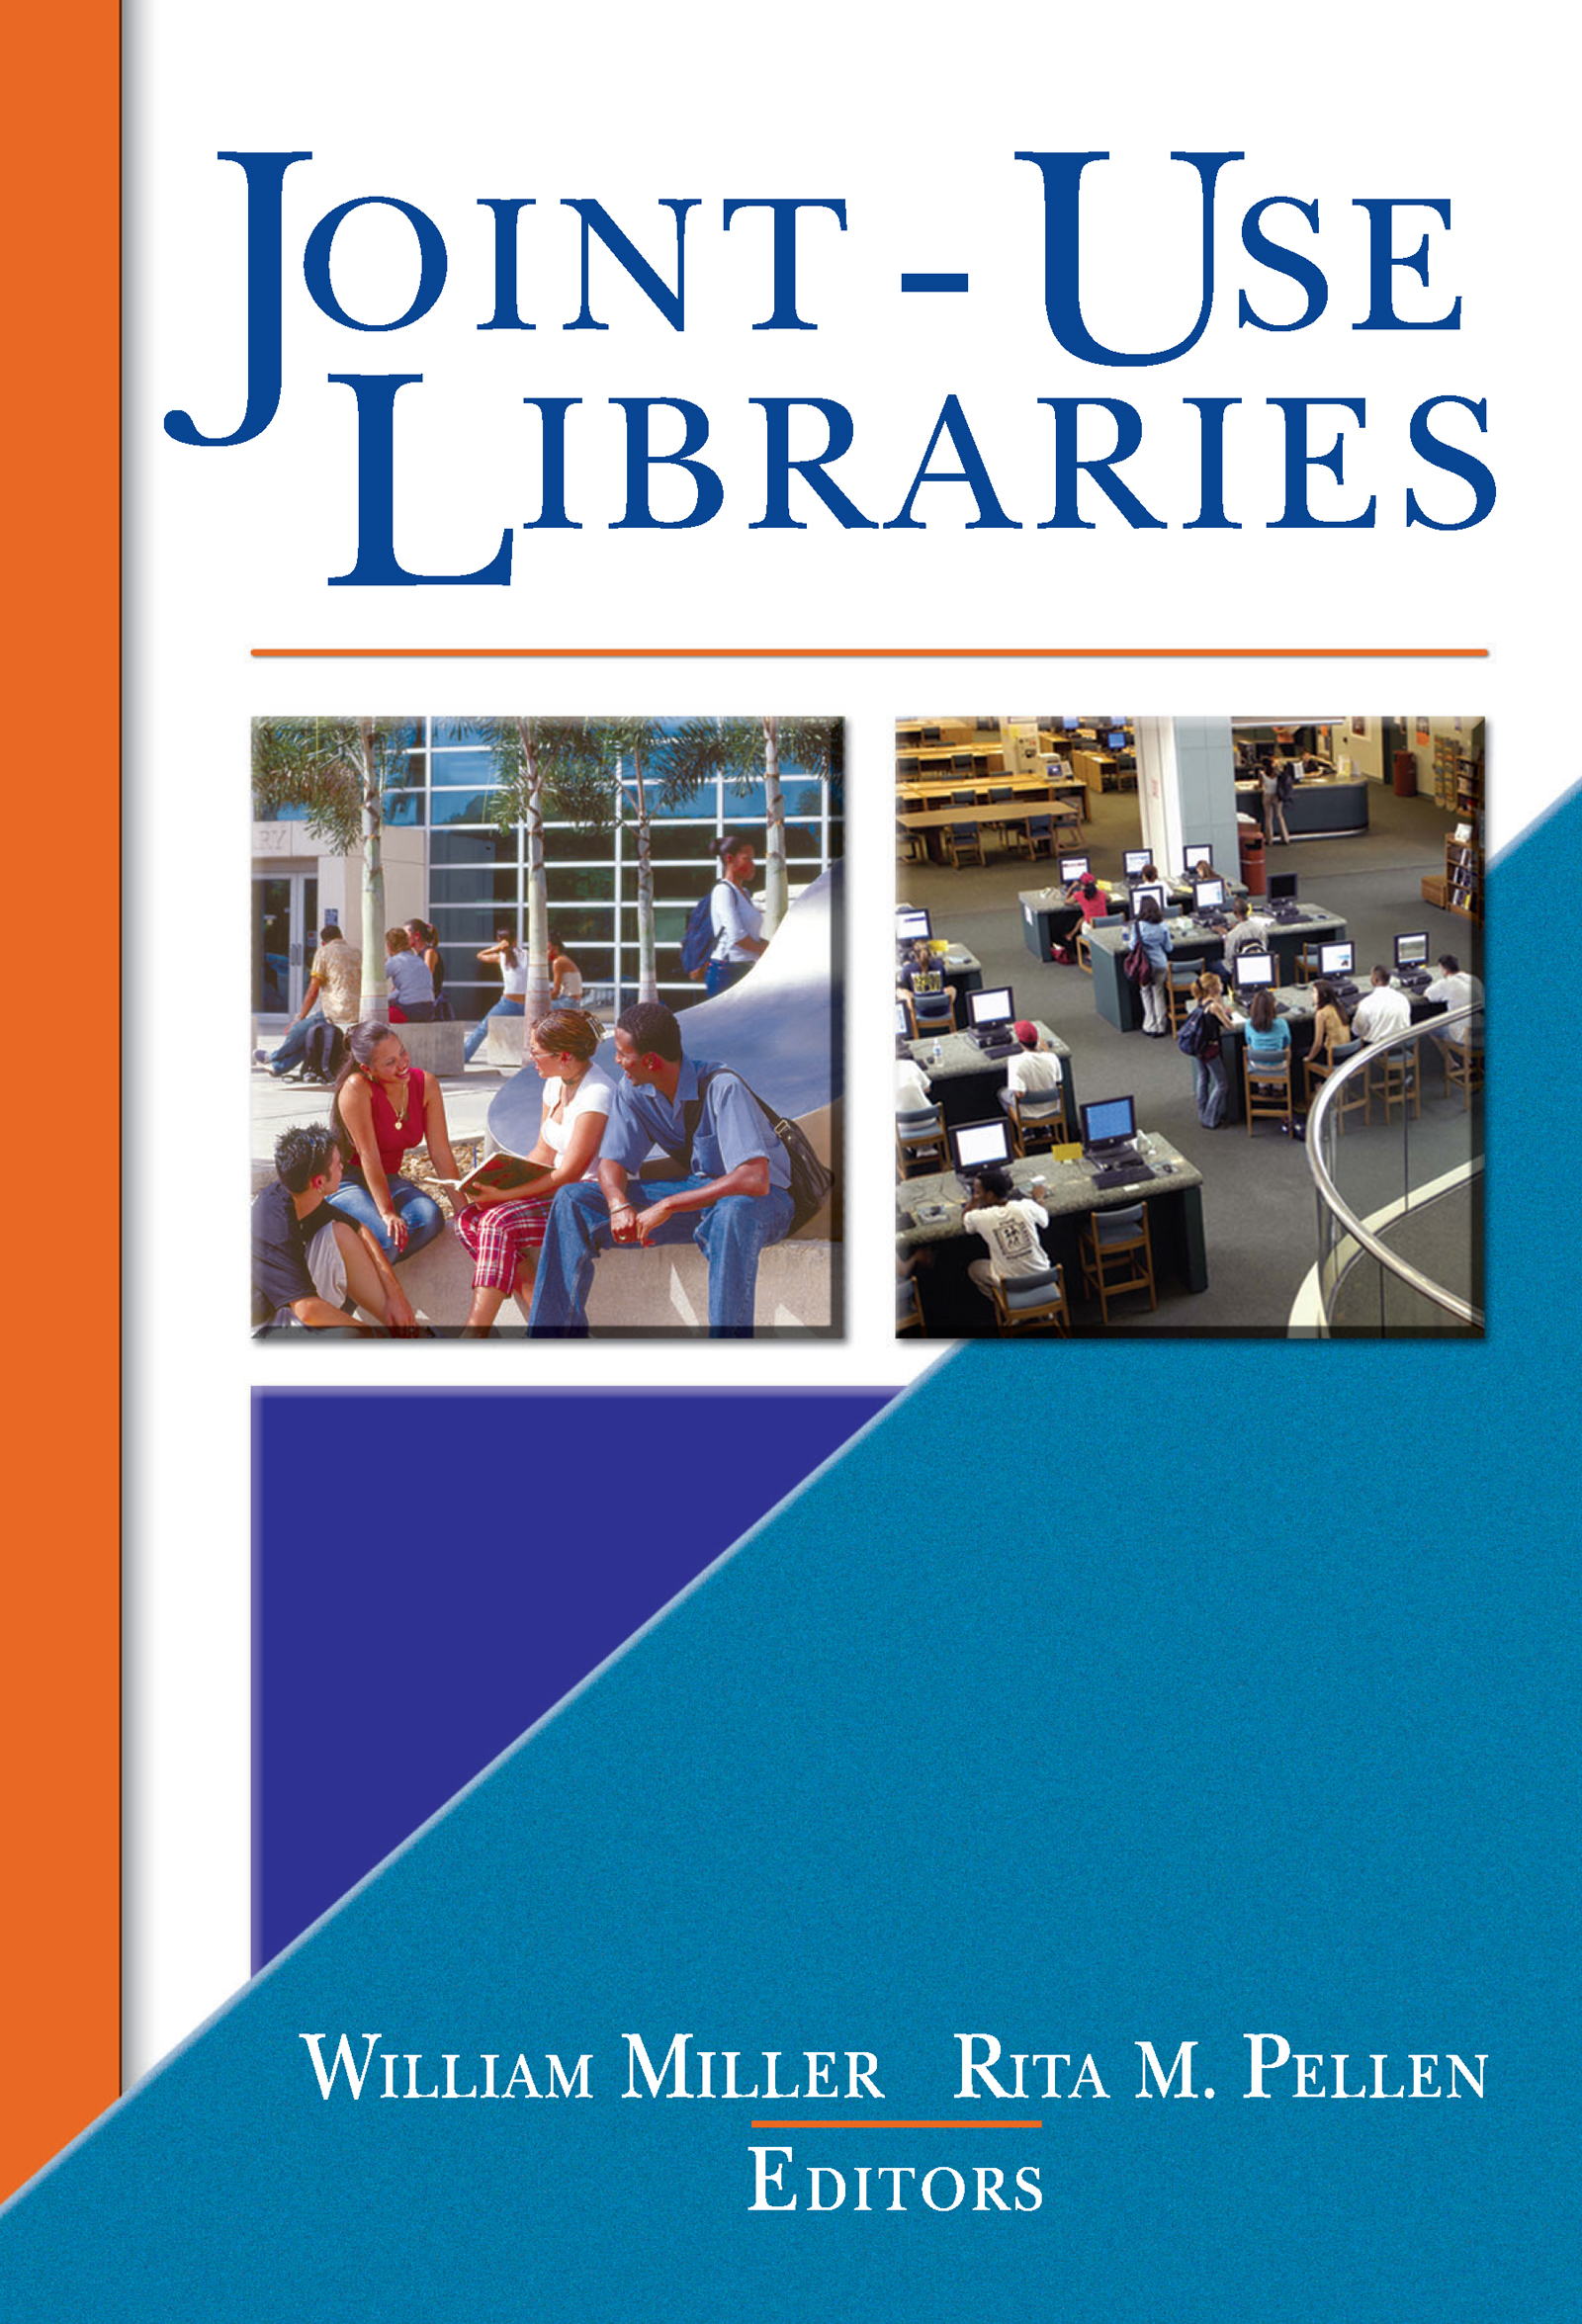 Joint-Use Libraries book cover